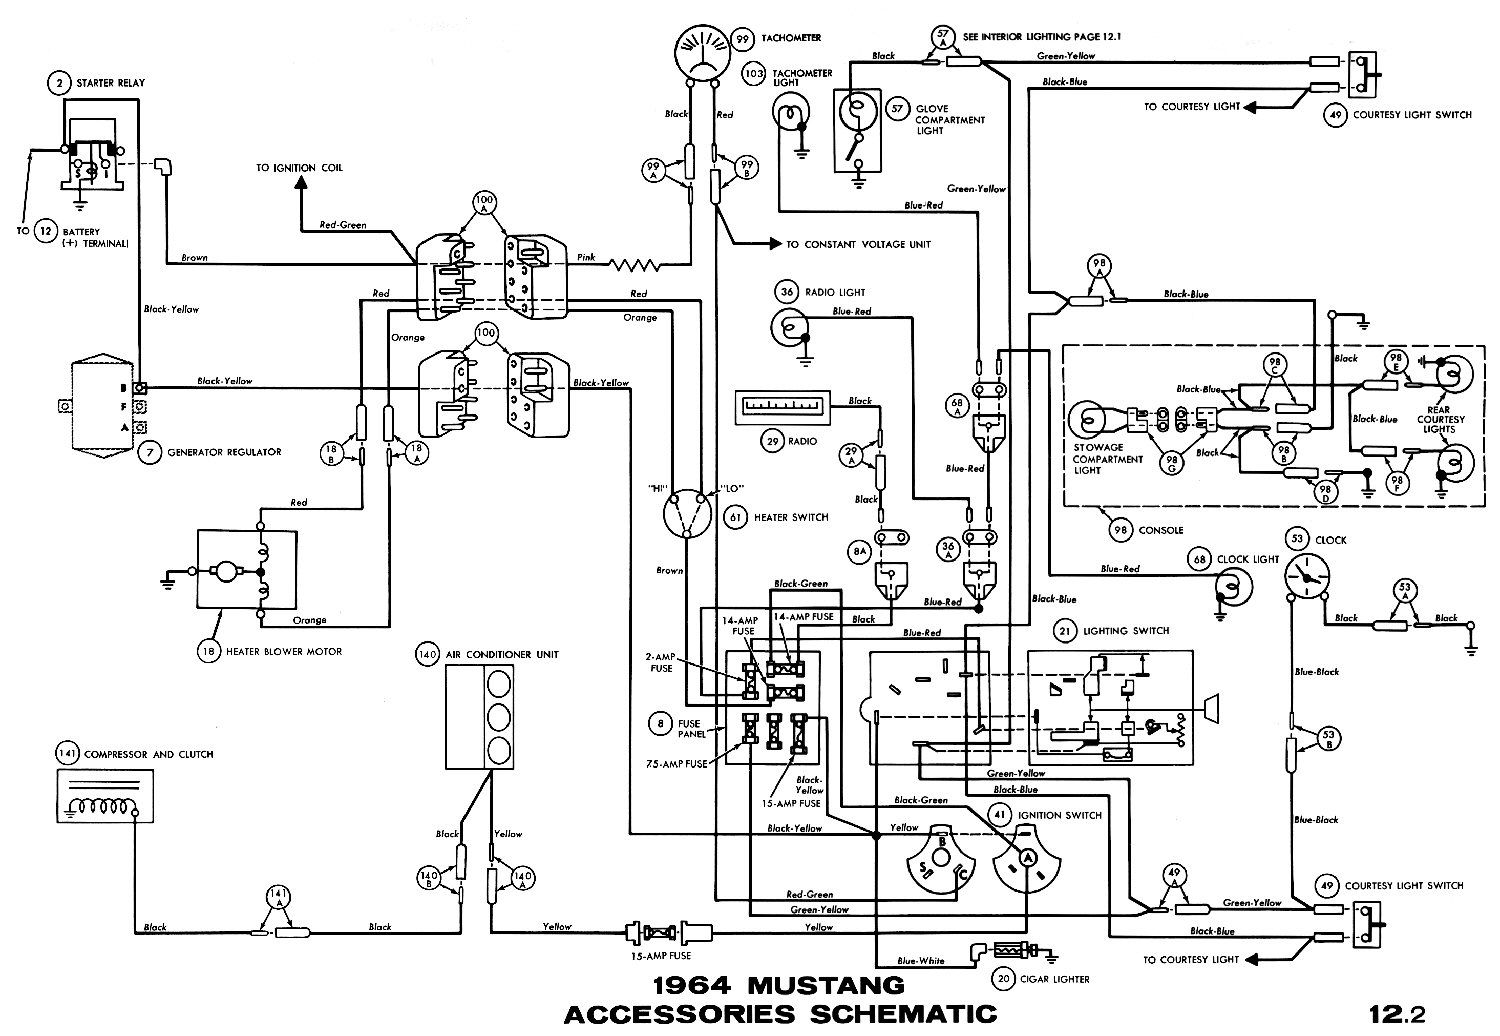 1970 mustang headlight switch wiring diagram